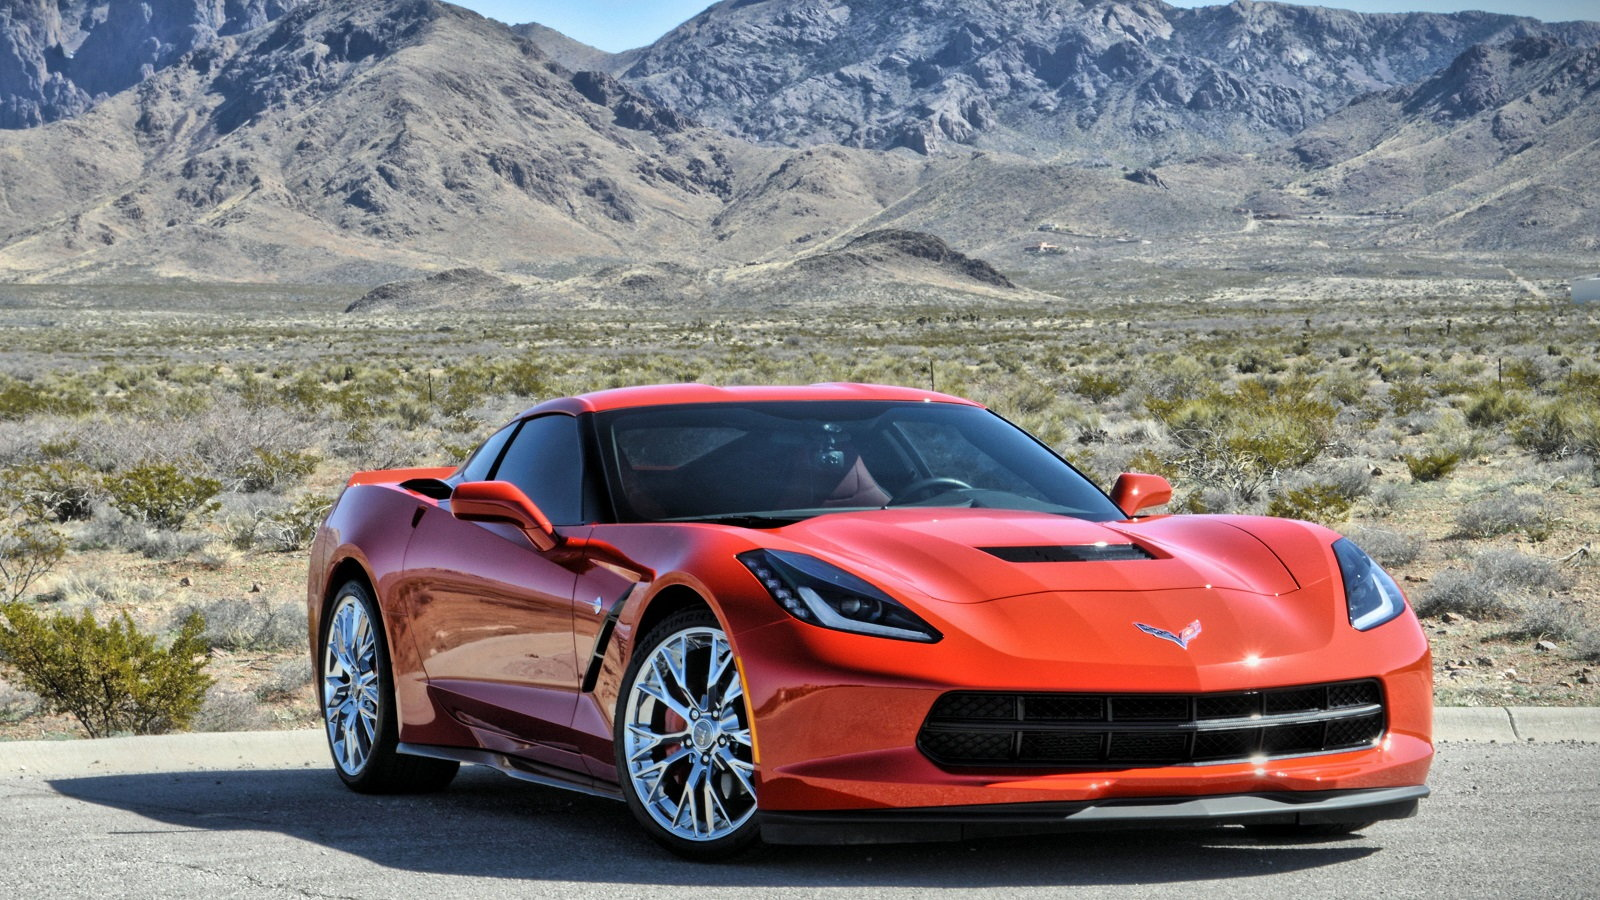 7 Reasons to Make Your Corvette Your Daily Driver